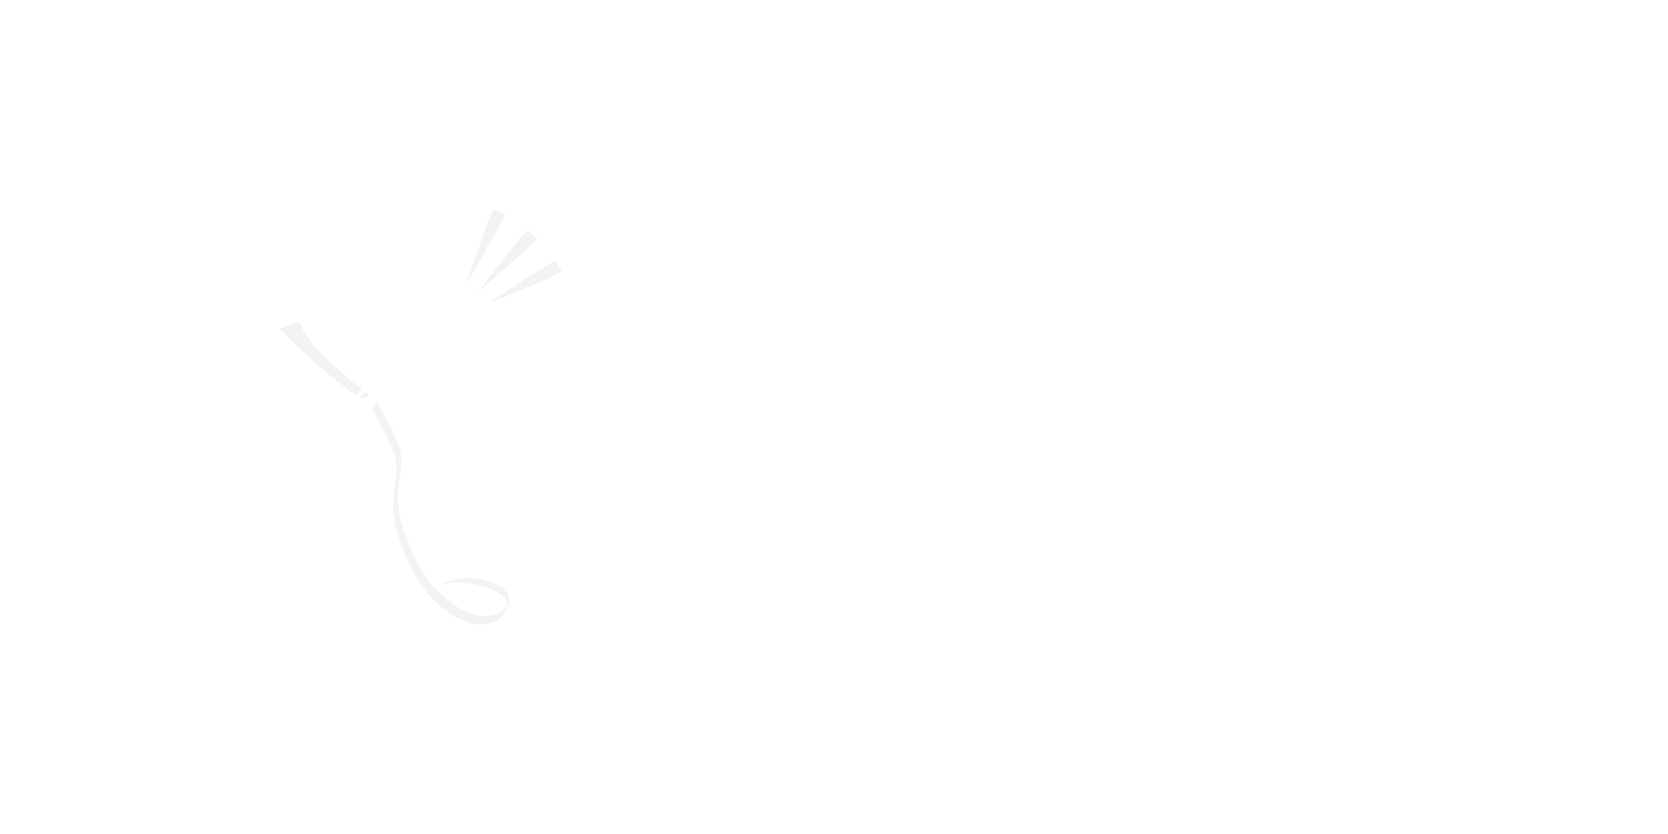 Ruckus - Security7 Networks